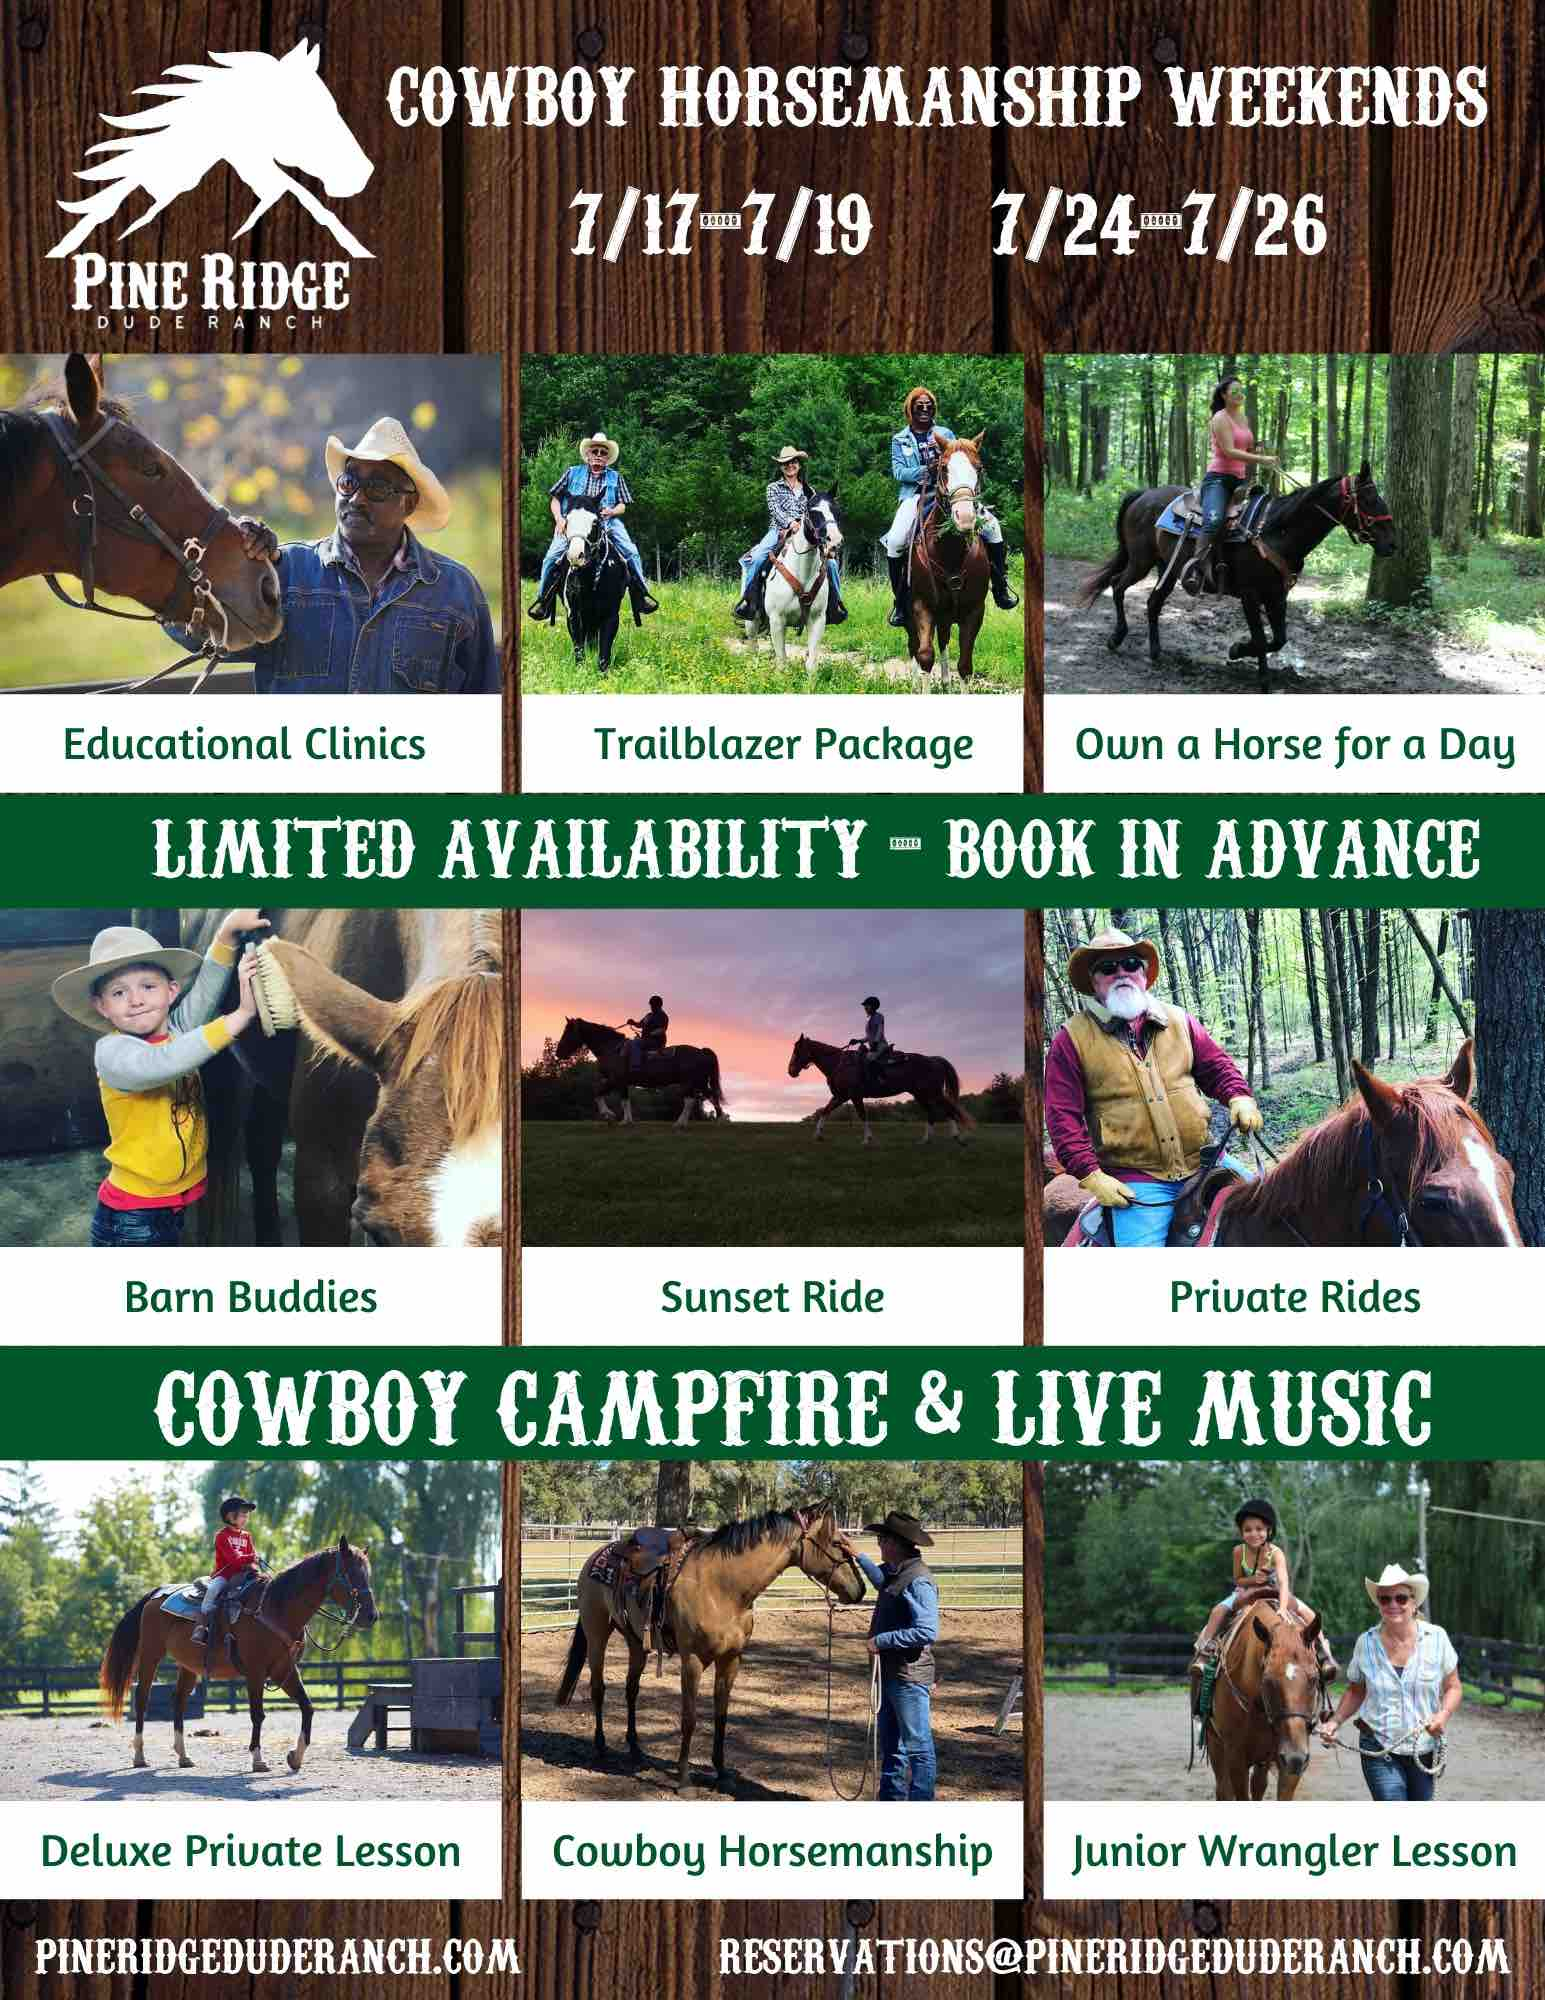 cowboy horsemanship promotion with dates and classes